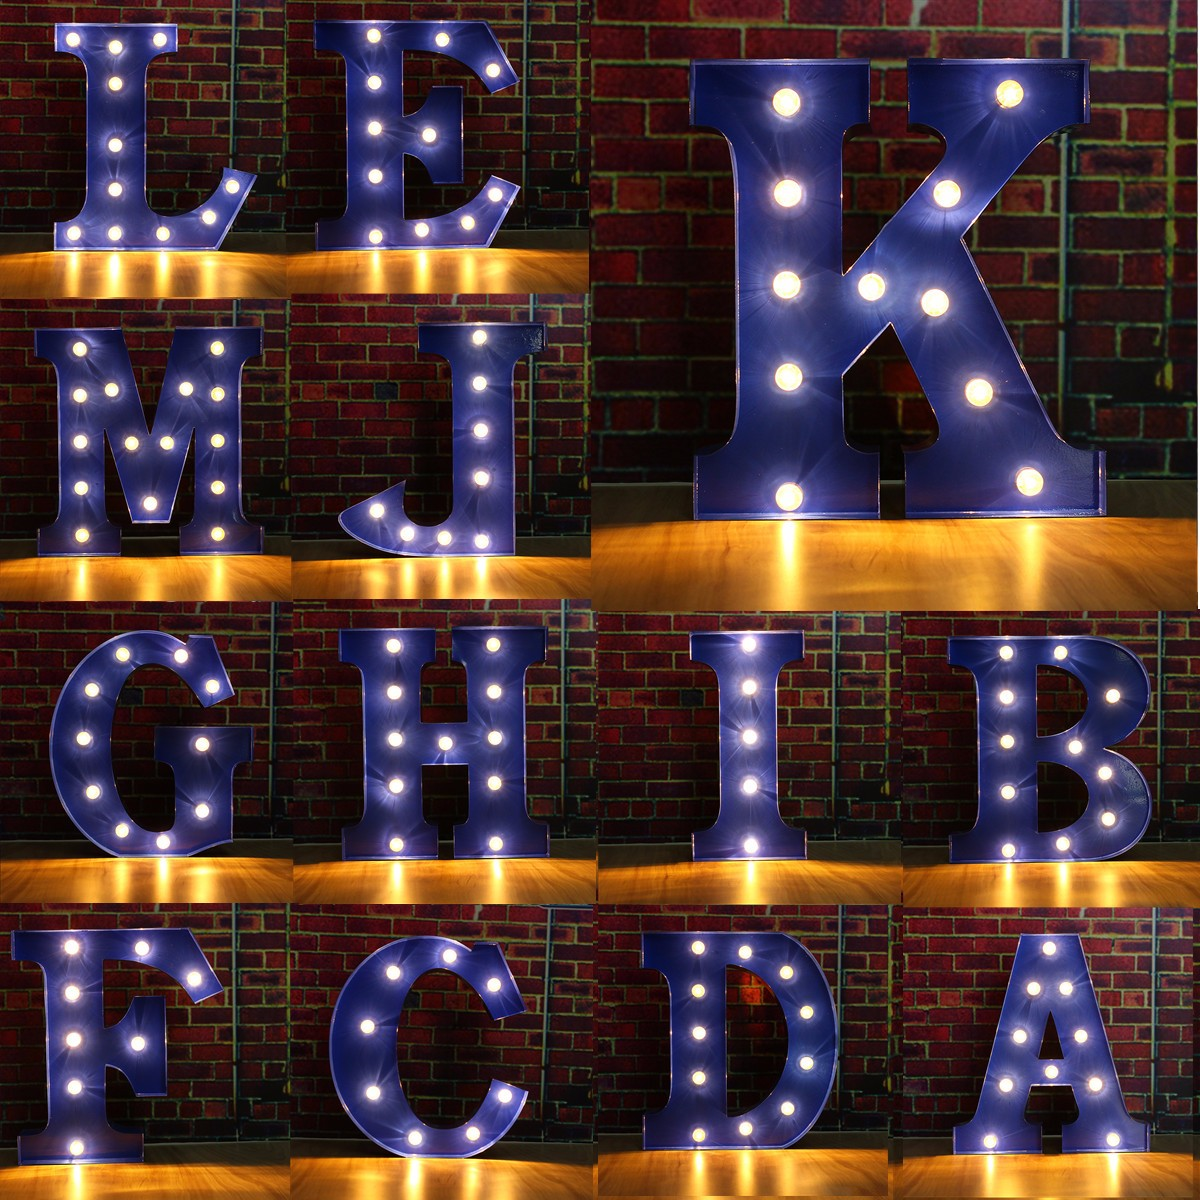 Wall Lamp LED Night Light Lamp Kids Marquee Letter Lights Vintage Alphabet Light Up Christmas Party Battery Operated ropio 3d night light box led table lamp marquee giraffe battery operated for children s room wedding party birthday decoration